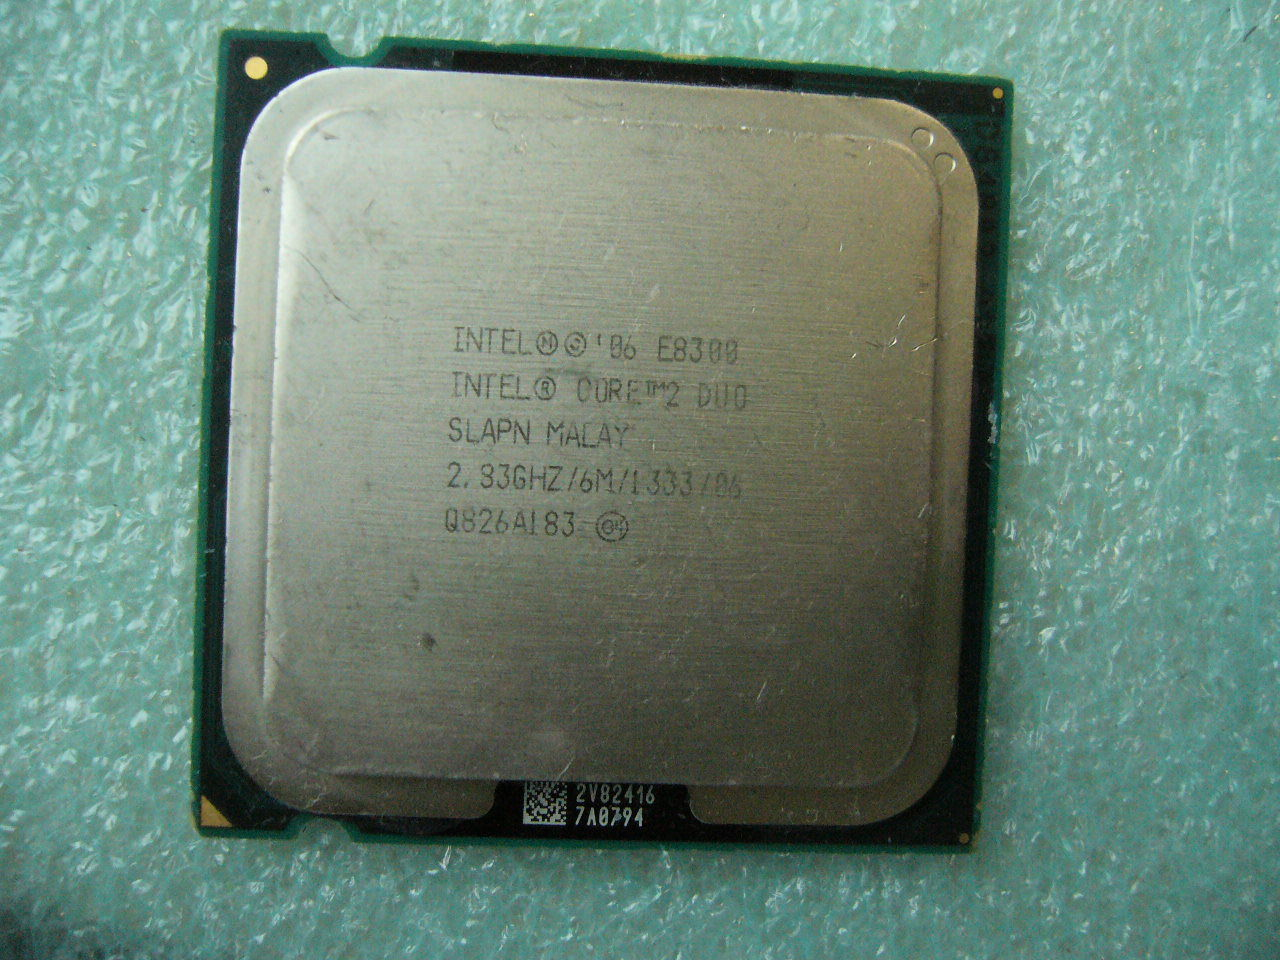 QTY 1x INTEL Core 2 Duo E8300 CPU 2.83GHz 6MB/1333Mhz LGA775 SLAPN